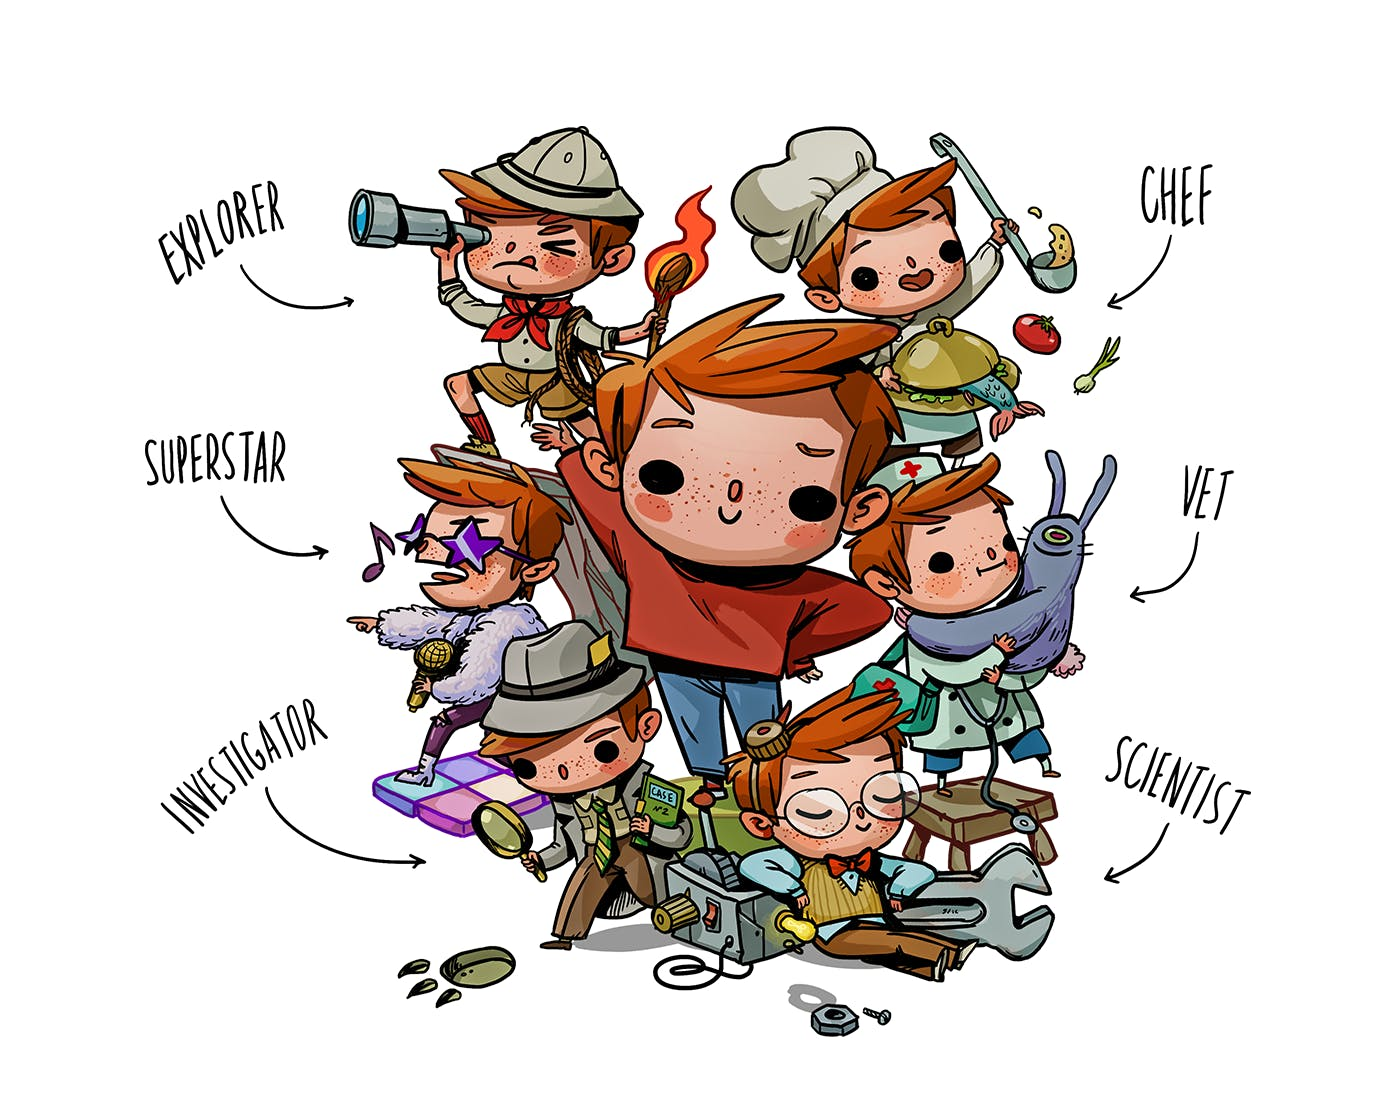 An image of a child as an explorer, chef, superstar, vet, investigator and a scientist